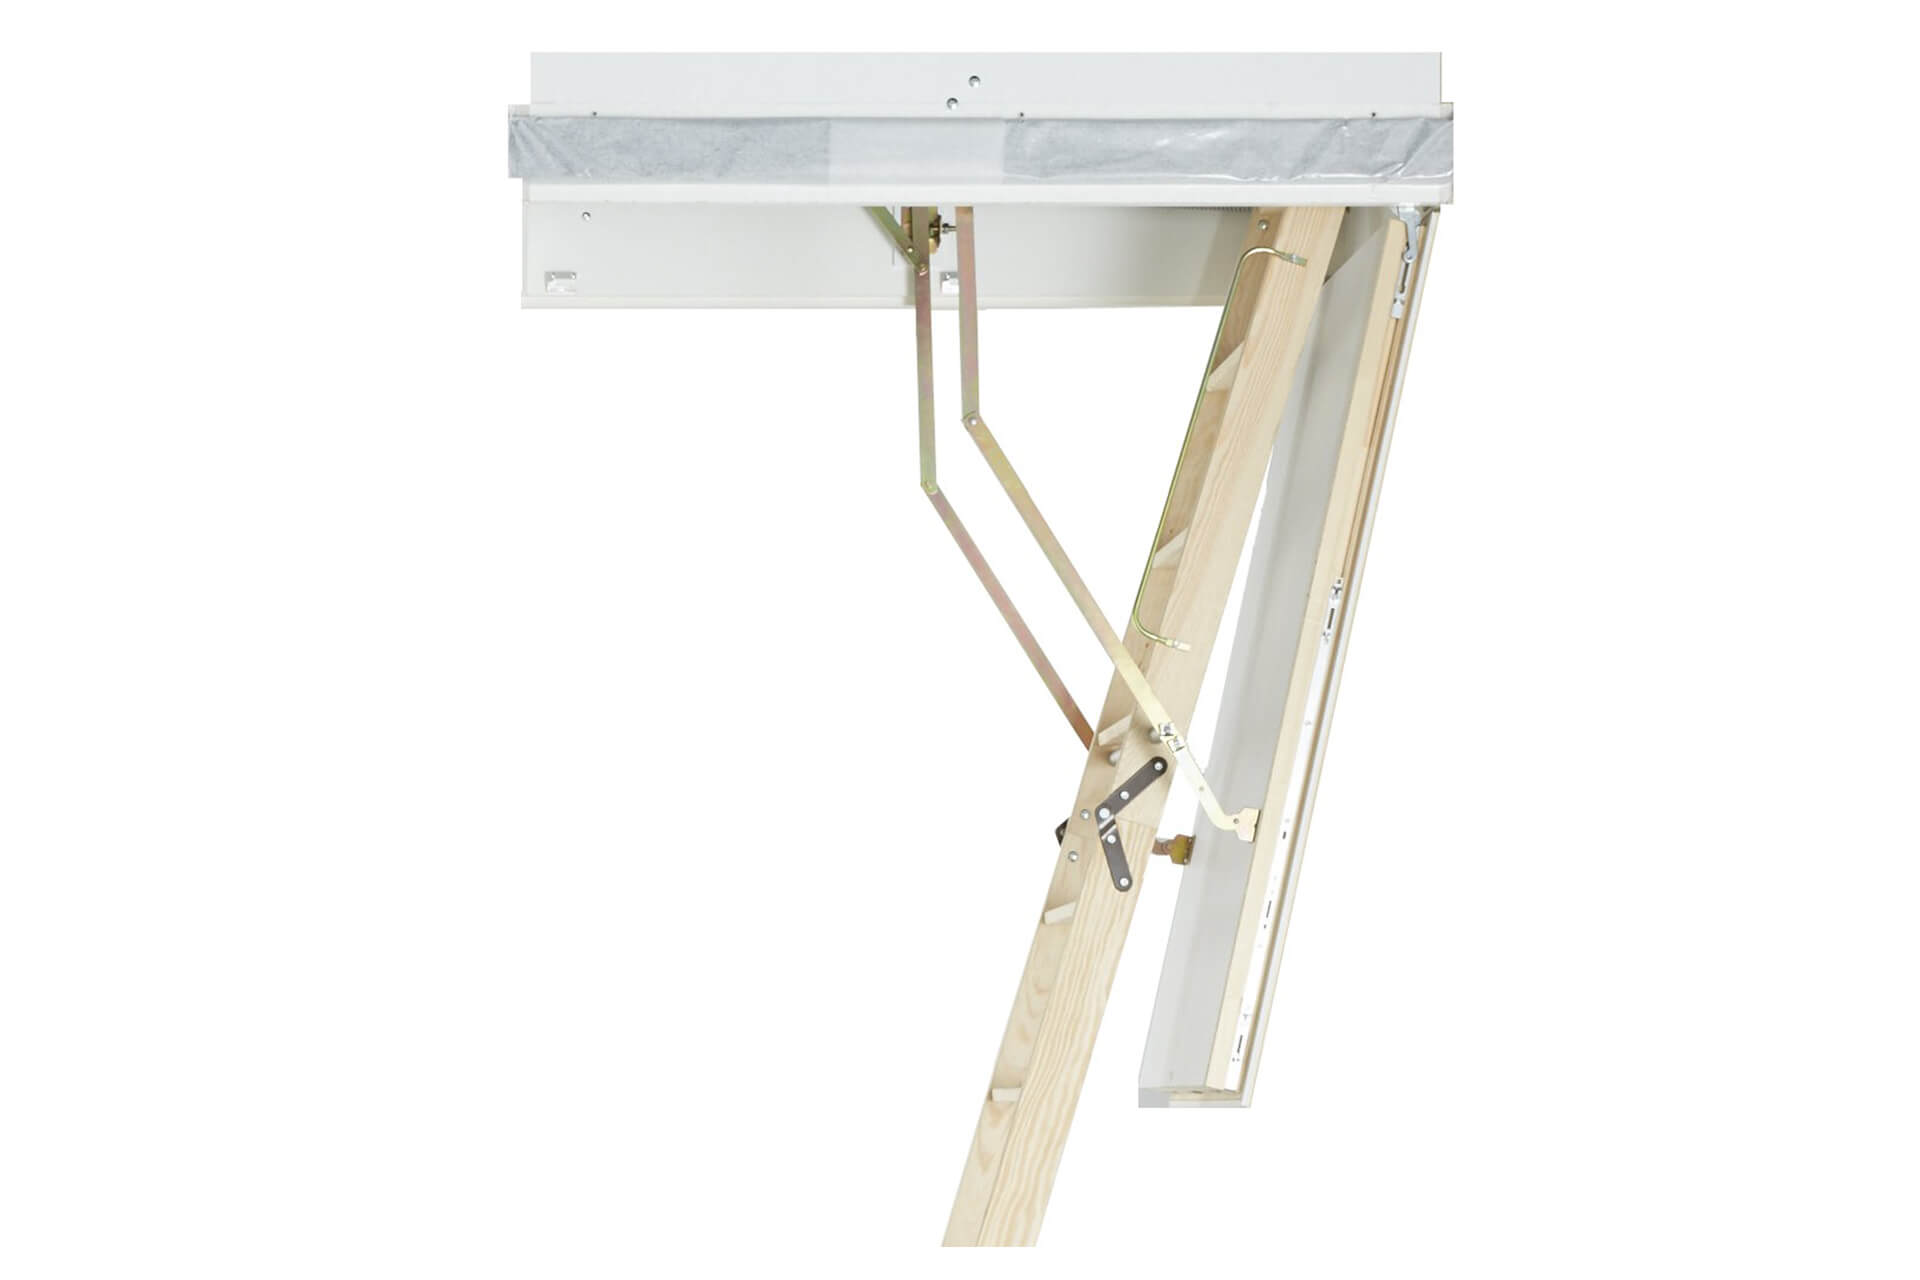 The Designo wooden loft ladder is certified with Class 4 air permeability ratings